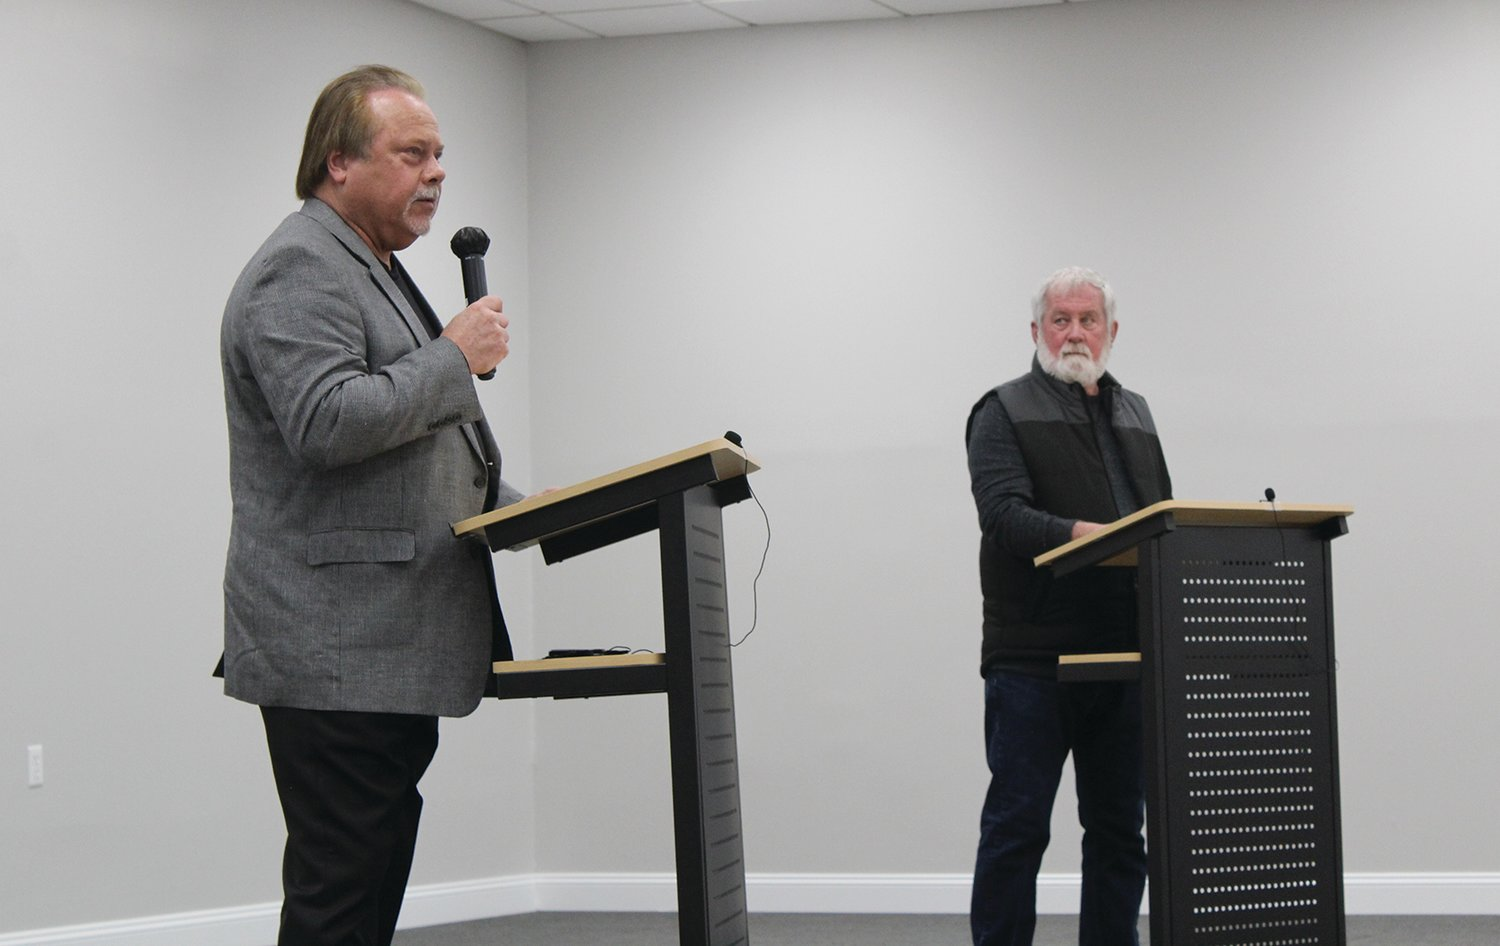 Candidates for mayor Steve Dougherty, at left, and Dwayne Gerl, at right, take the stage at the Litchfield Chamber of Commerce political forum held Tuesday evening, March 23, at the Litchfield Community Center.